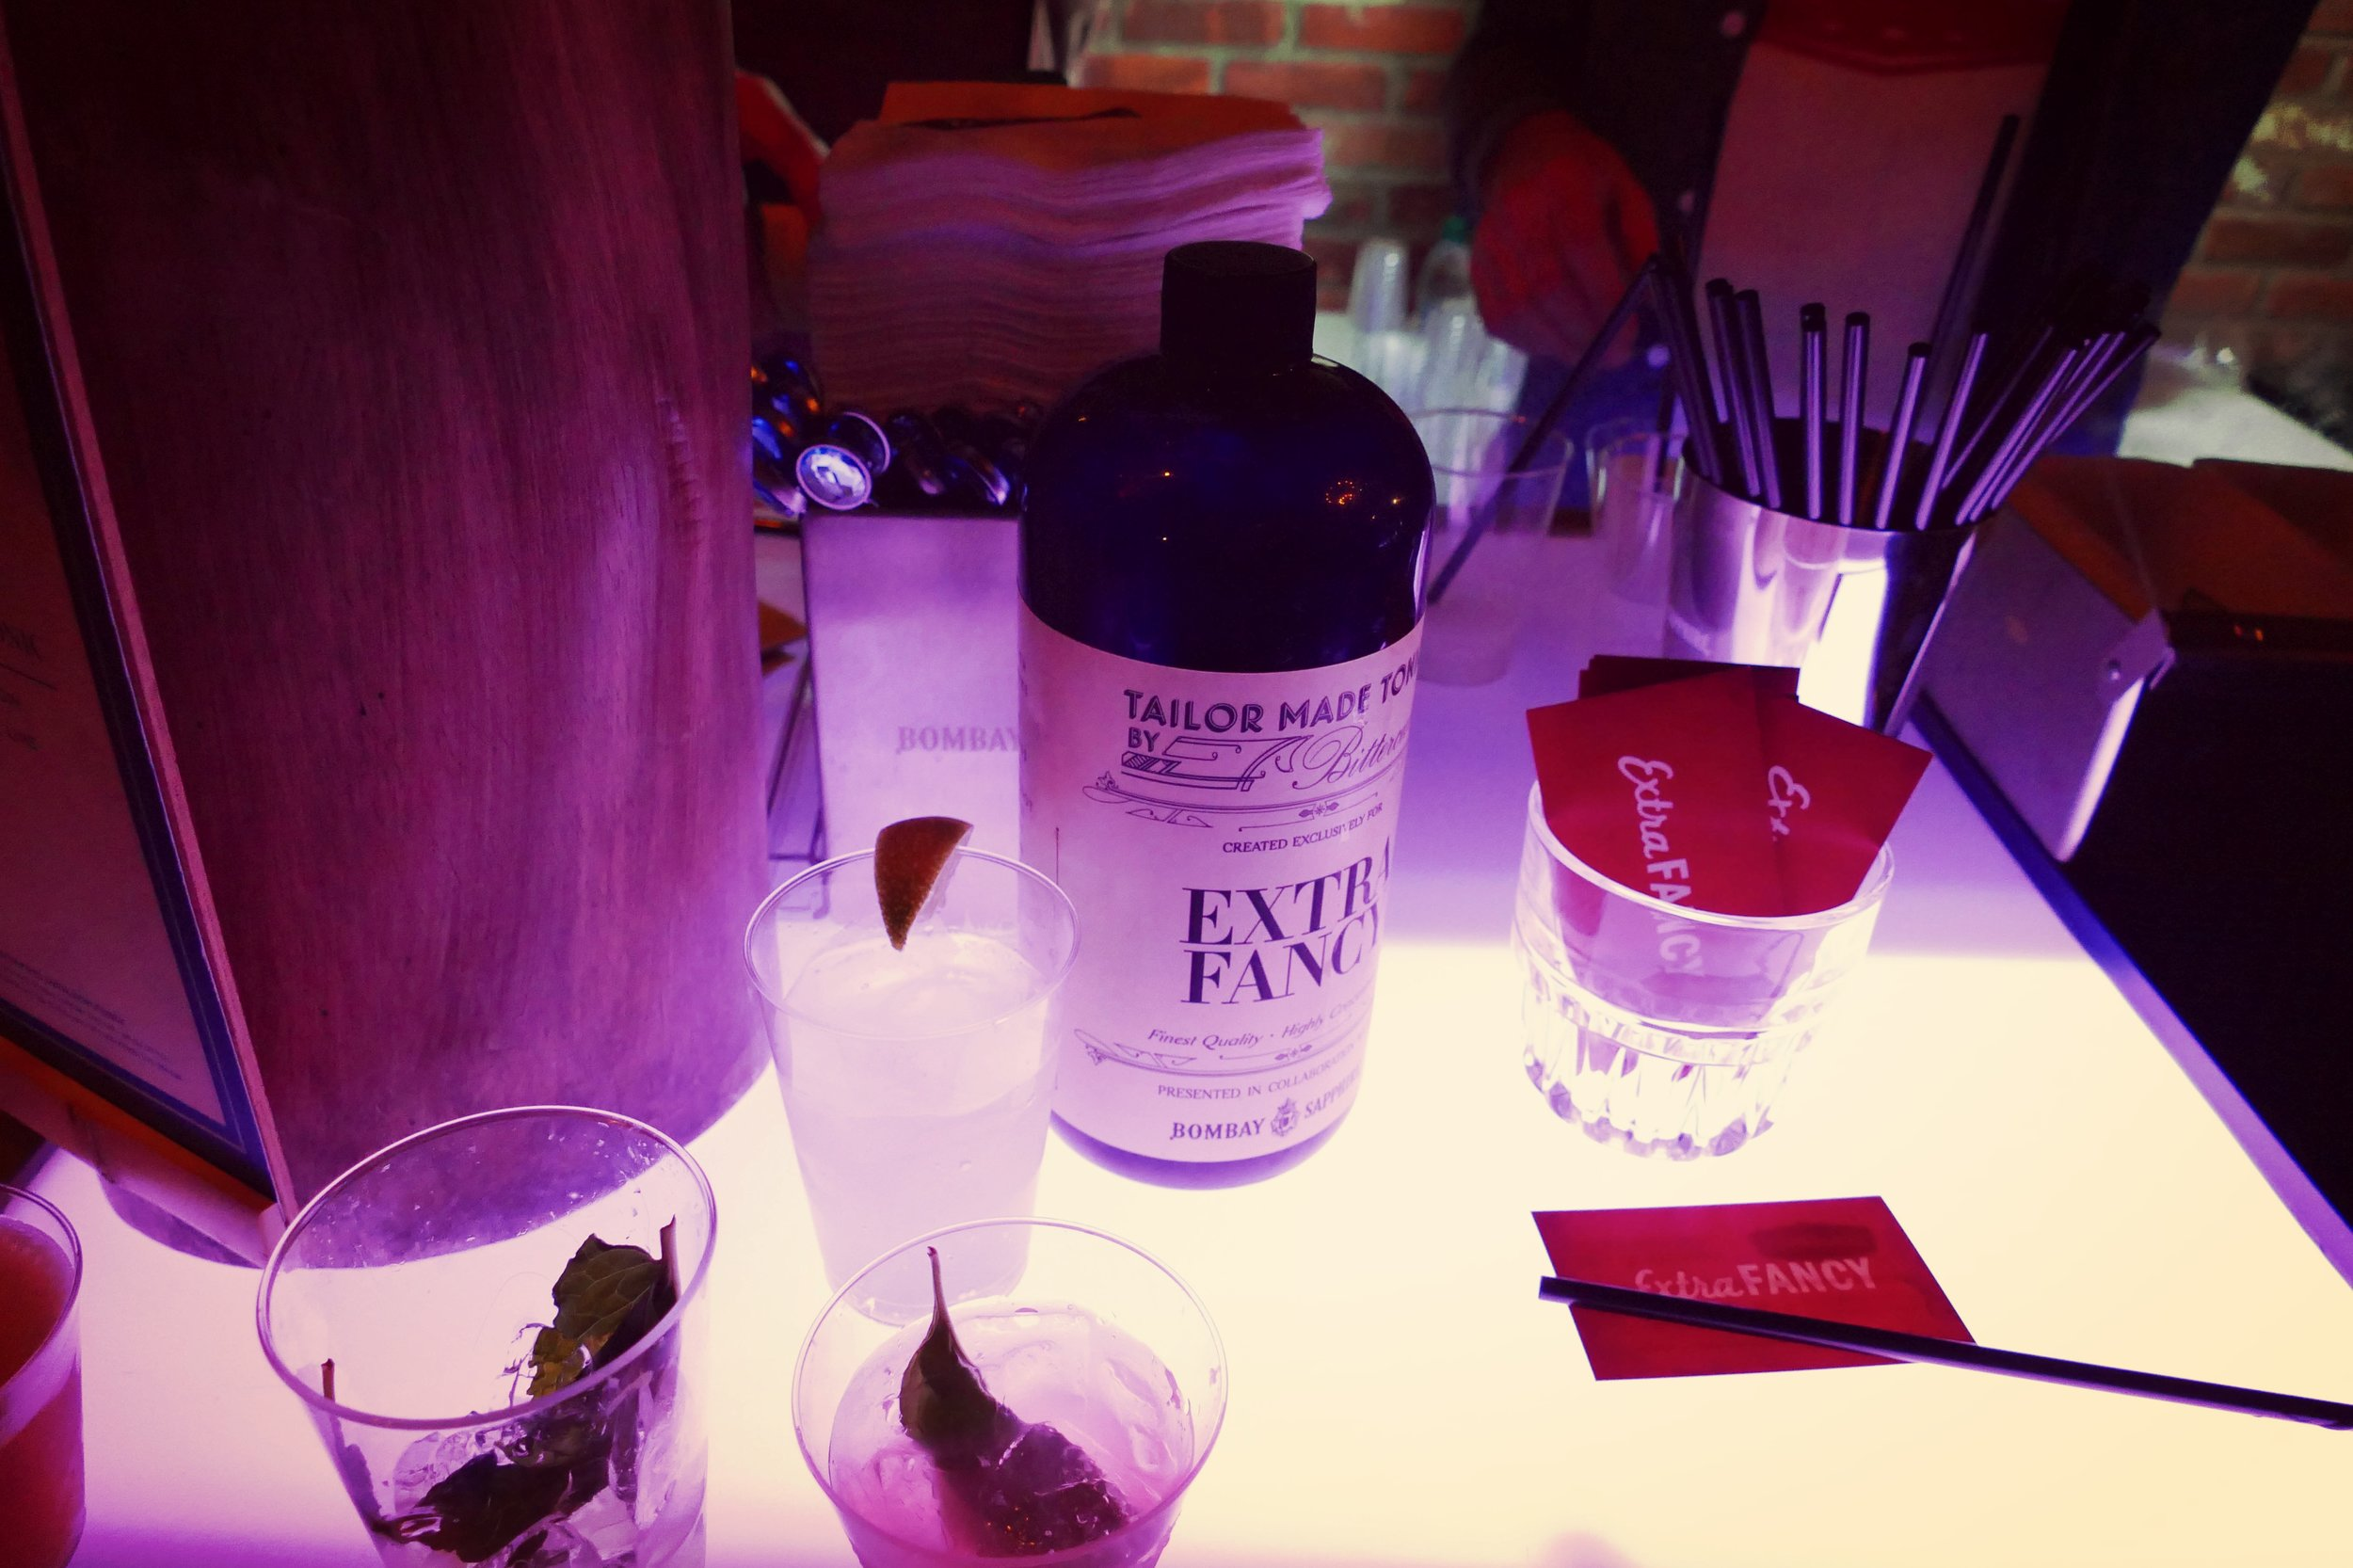 Rob Krueger, of EXTRA FANCY, and the FROZEN BOMBAY & TONIC: Bombay Sapphire® East Gin, Extra Fancy Tonic Mix, Lime